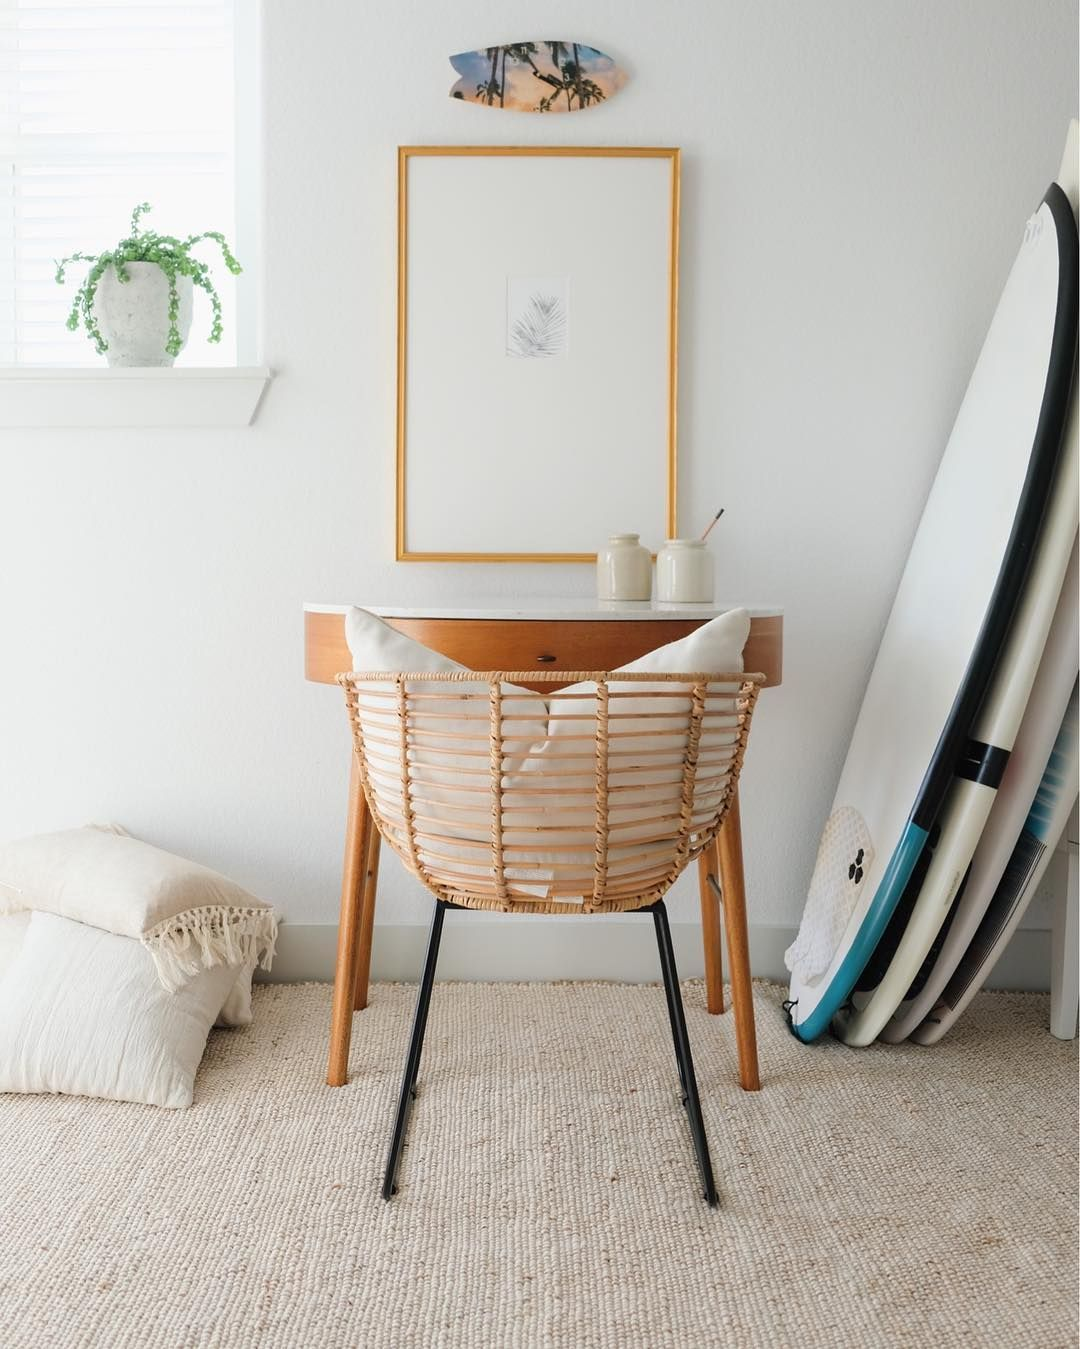 In The Spirit Of Keeping Things Interesting Around Here I M Sharing A Never Before Seen Space We Have A Th Wanderlust Wall Decor Surf Decor Home Office Decor